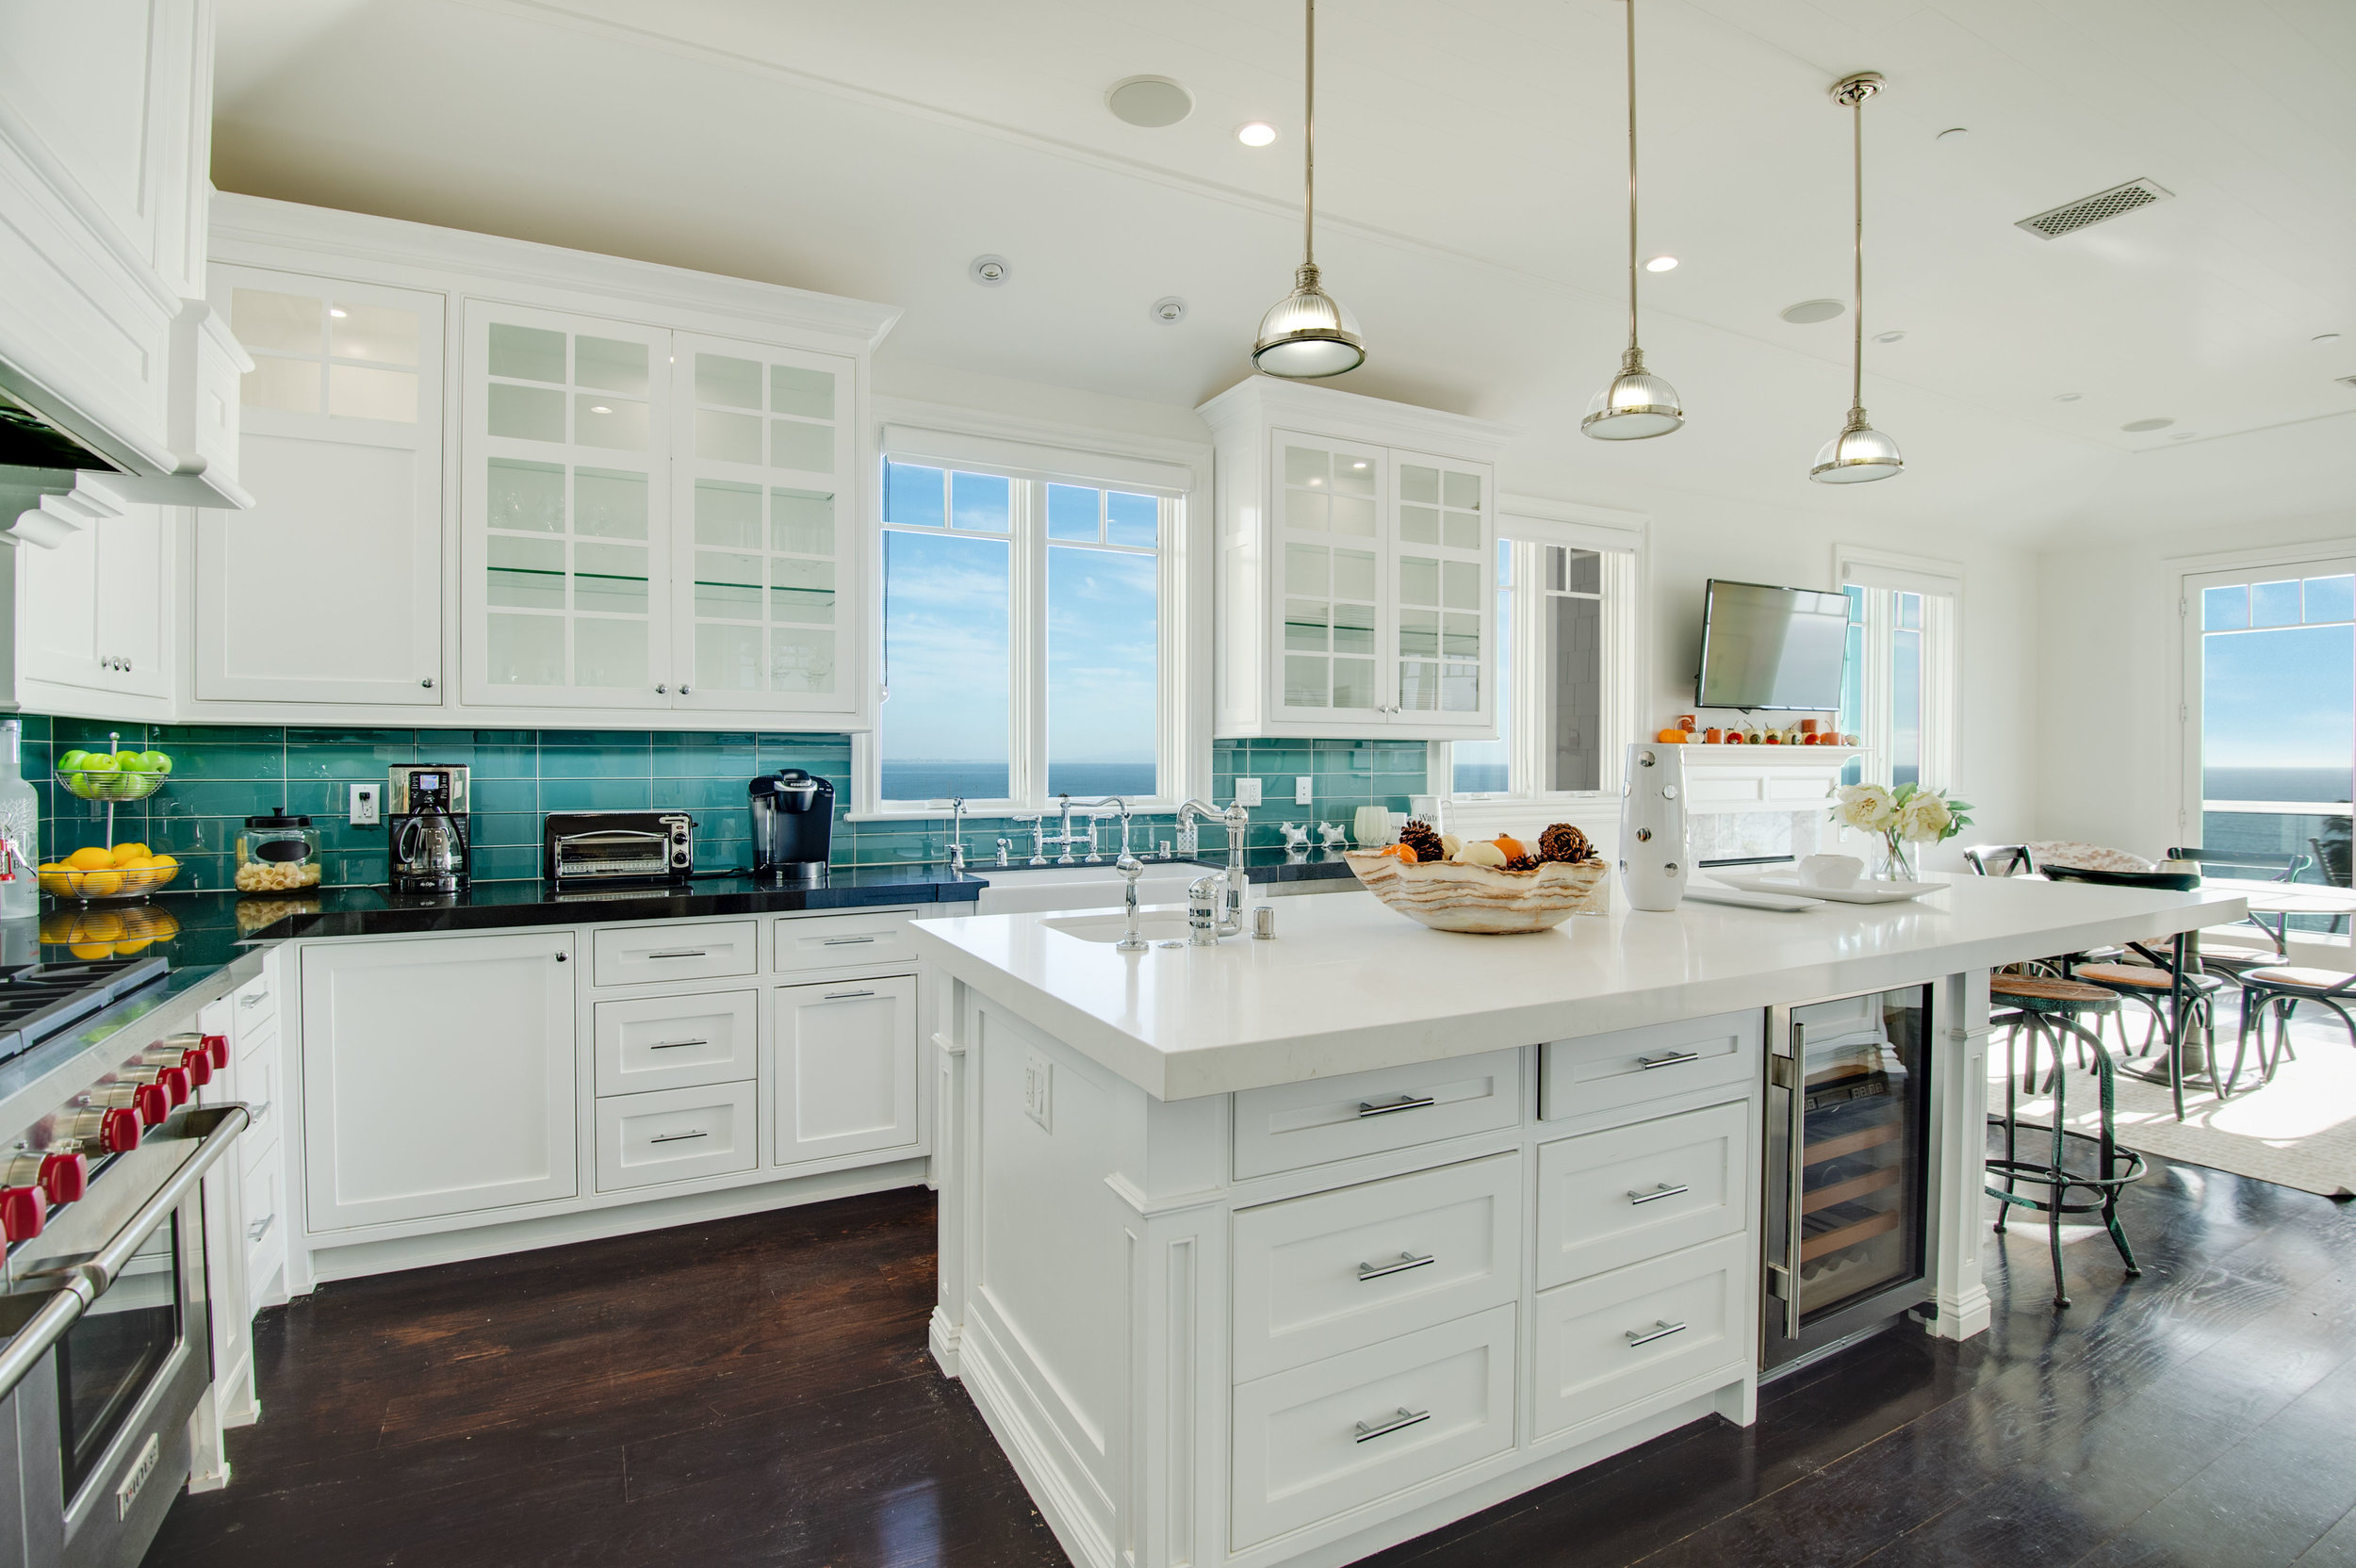 008 Kitchen 17819 Castellammare Drive Pacific Palisades For Sale Lease The Malibu Life Team Compass Luxury Real Estate.jpg